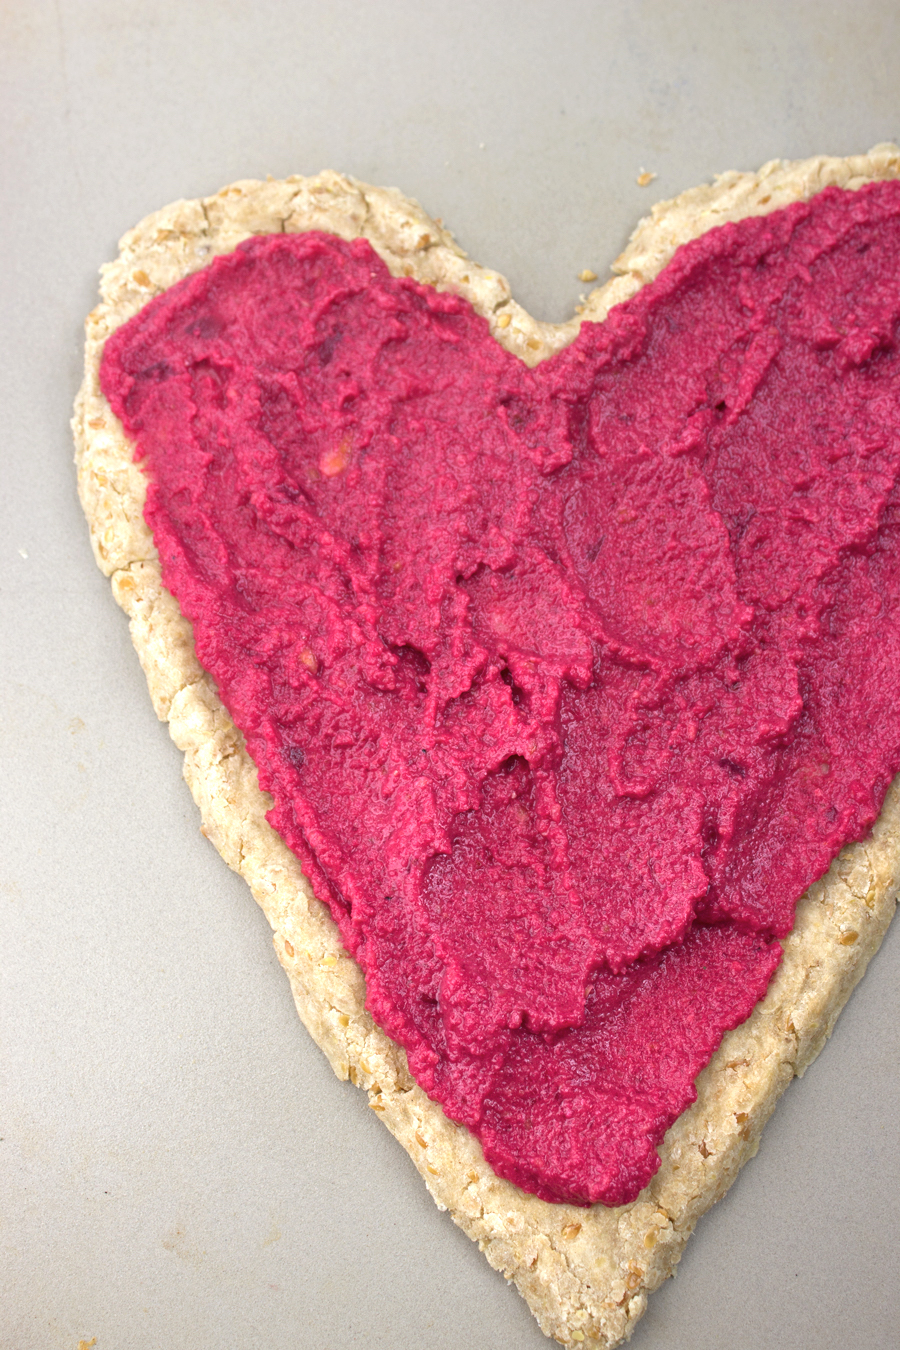 beet-pesto-heart-pizza-3c